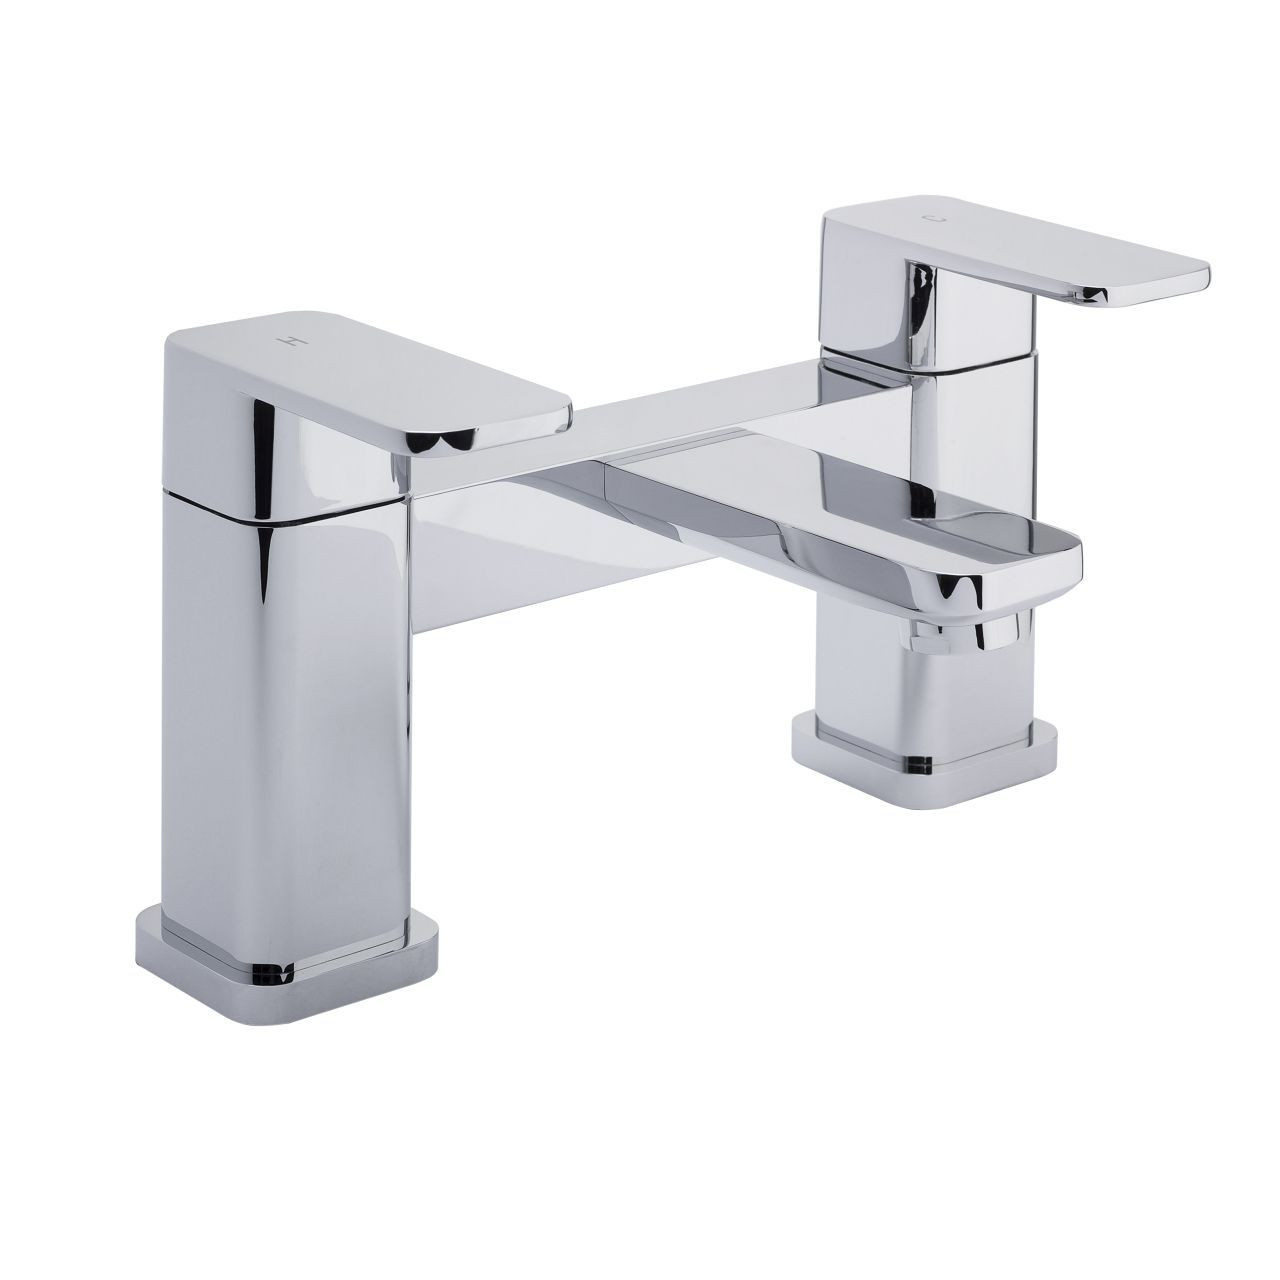 RAK Resort Bath Filler Tap - RAK710822